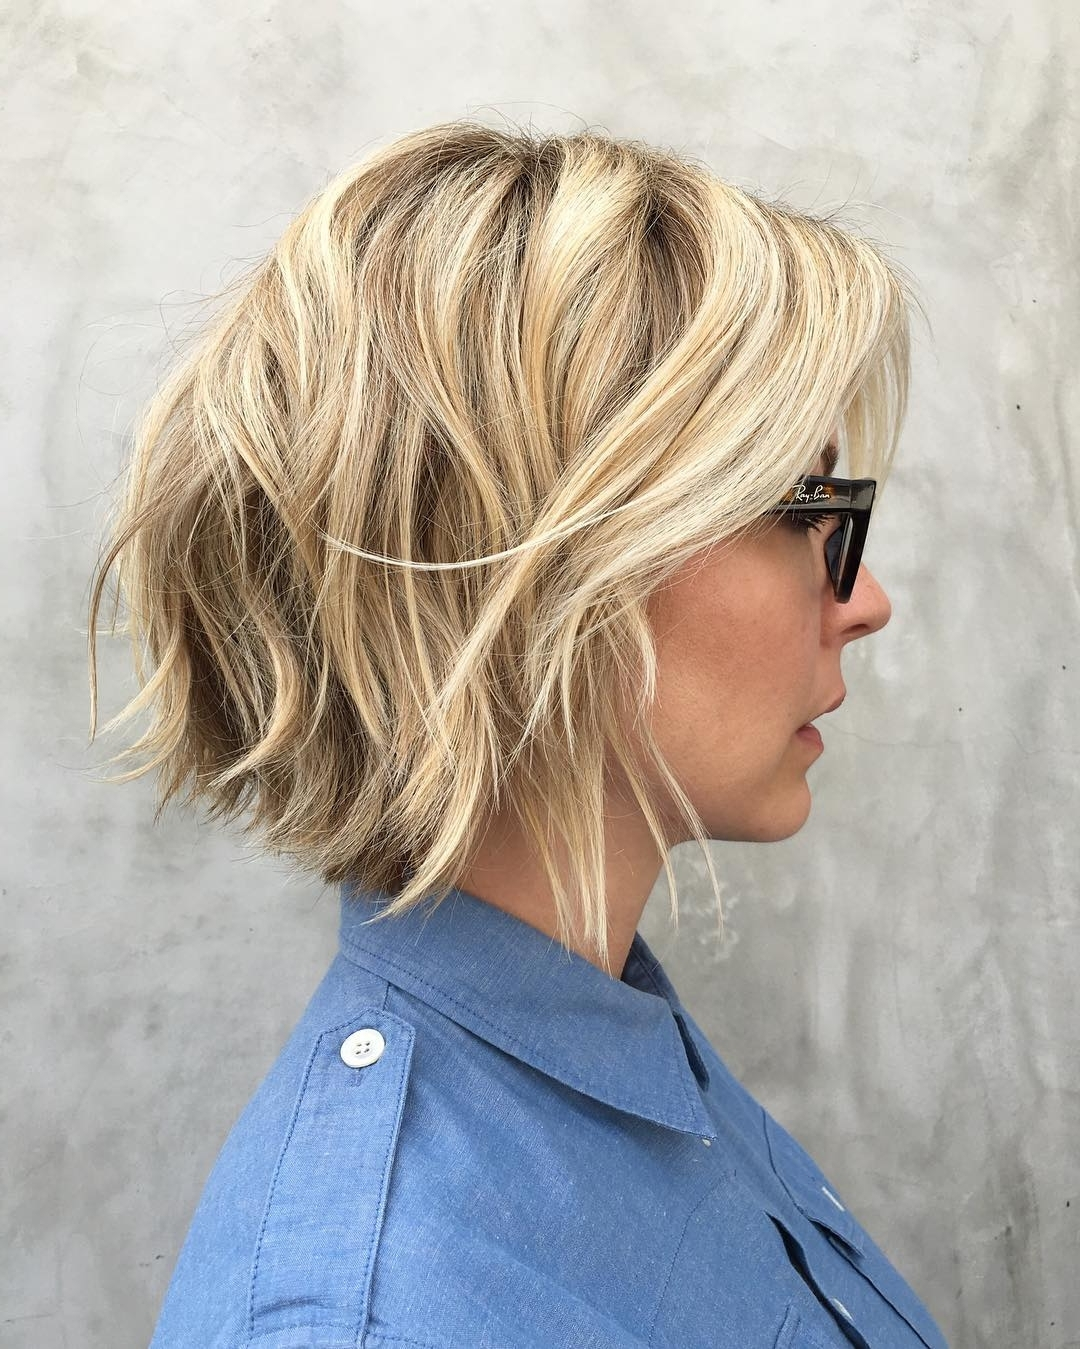 30 Trendiest Shaggy Bob Haircuts Of The Season In Most Current Shaggy Crop Hairstyles (View 1 of 15)